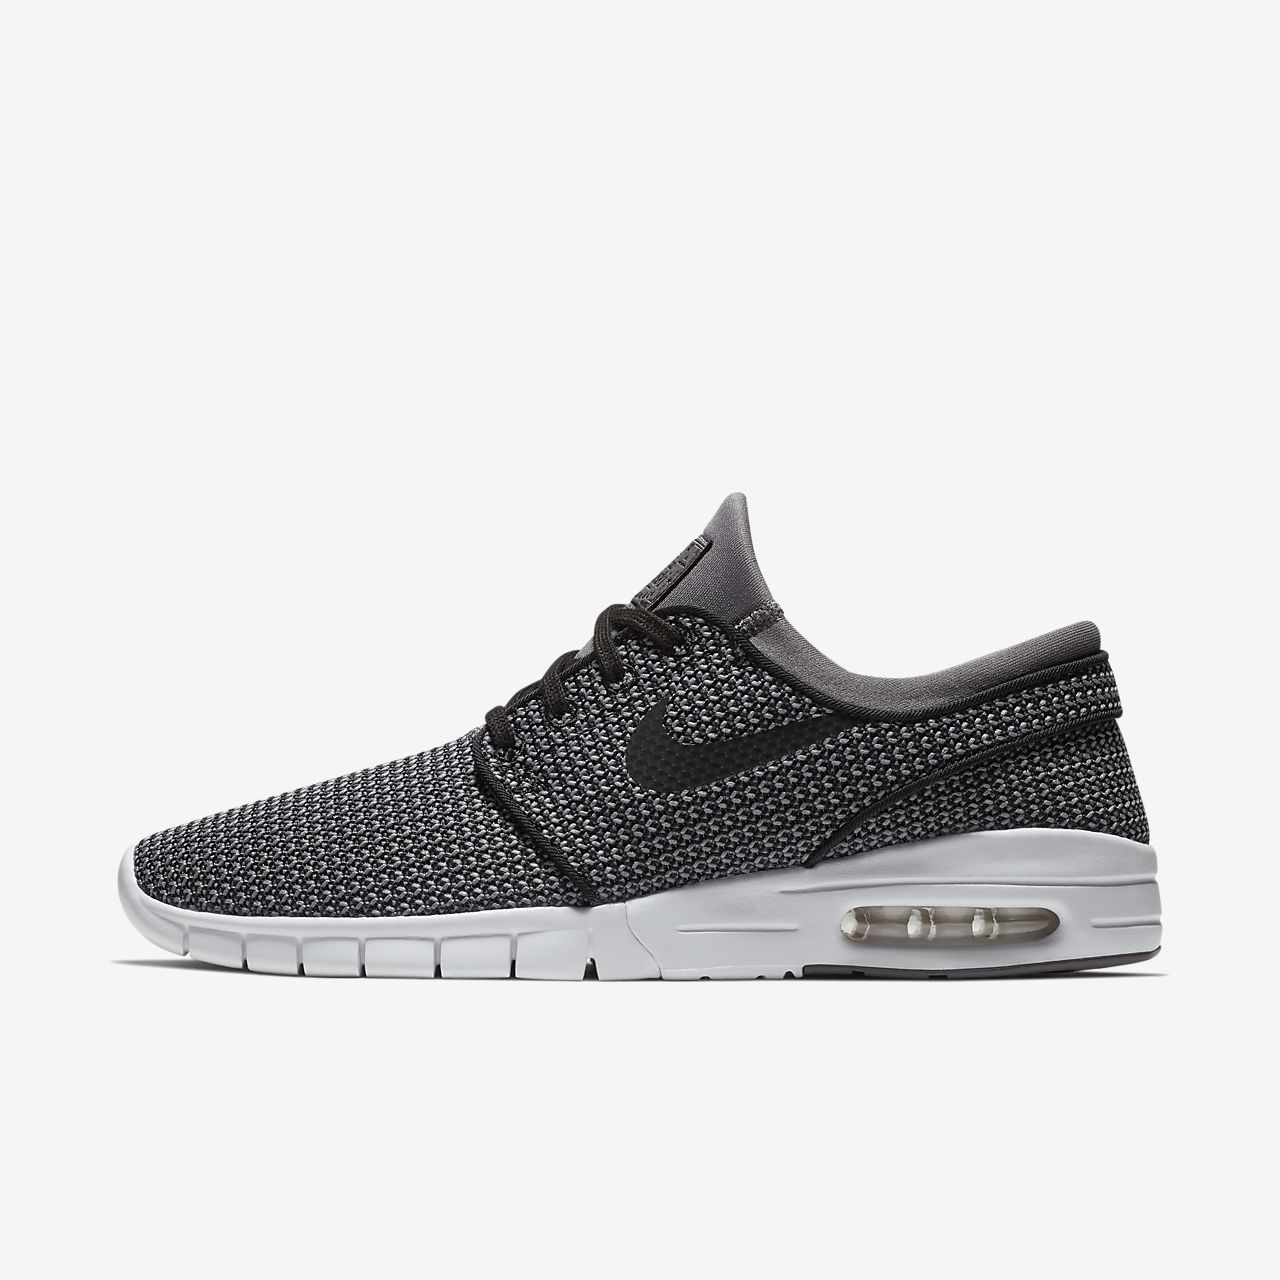 Nike SB Stefan Janoski Max Men's Skateboarding Shoes Black/White vB2271M